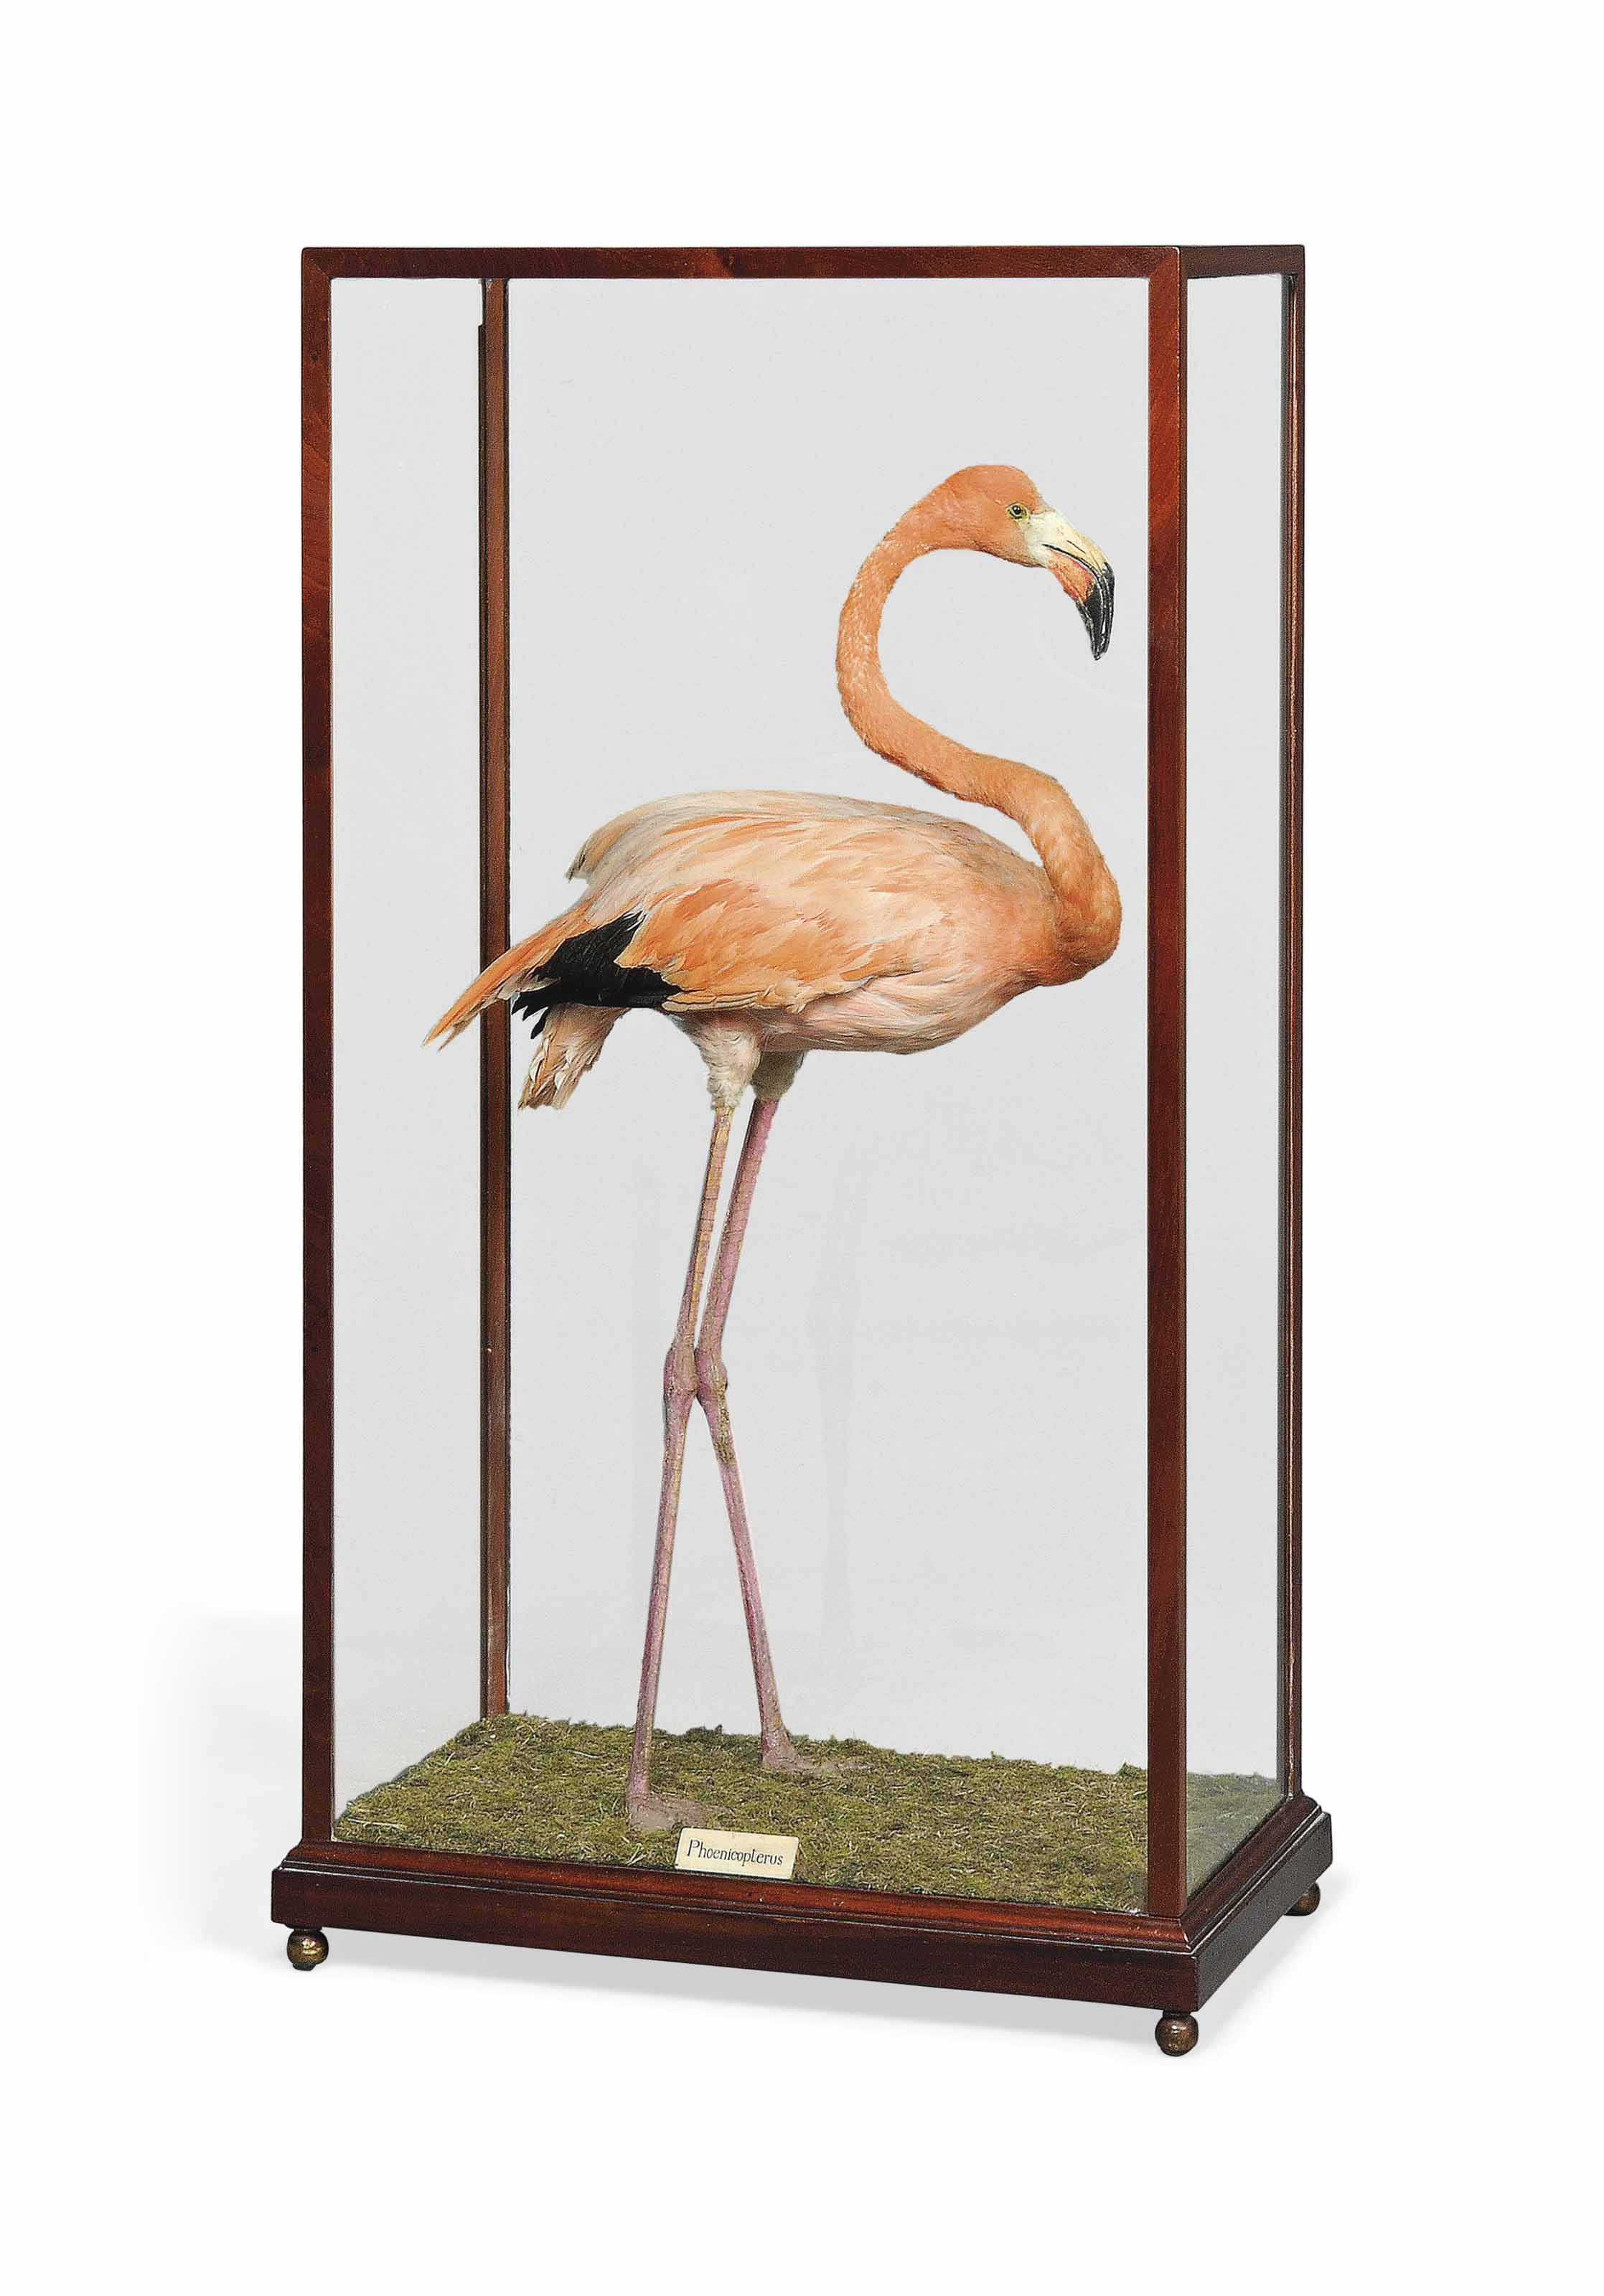 A TAXIDERMY MOUNTED FLAMINGO